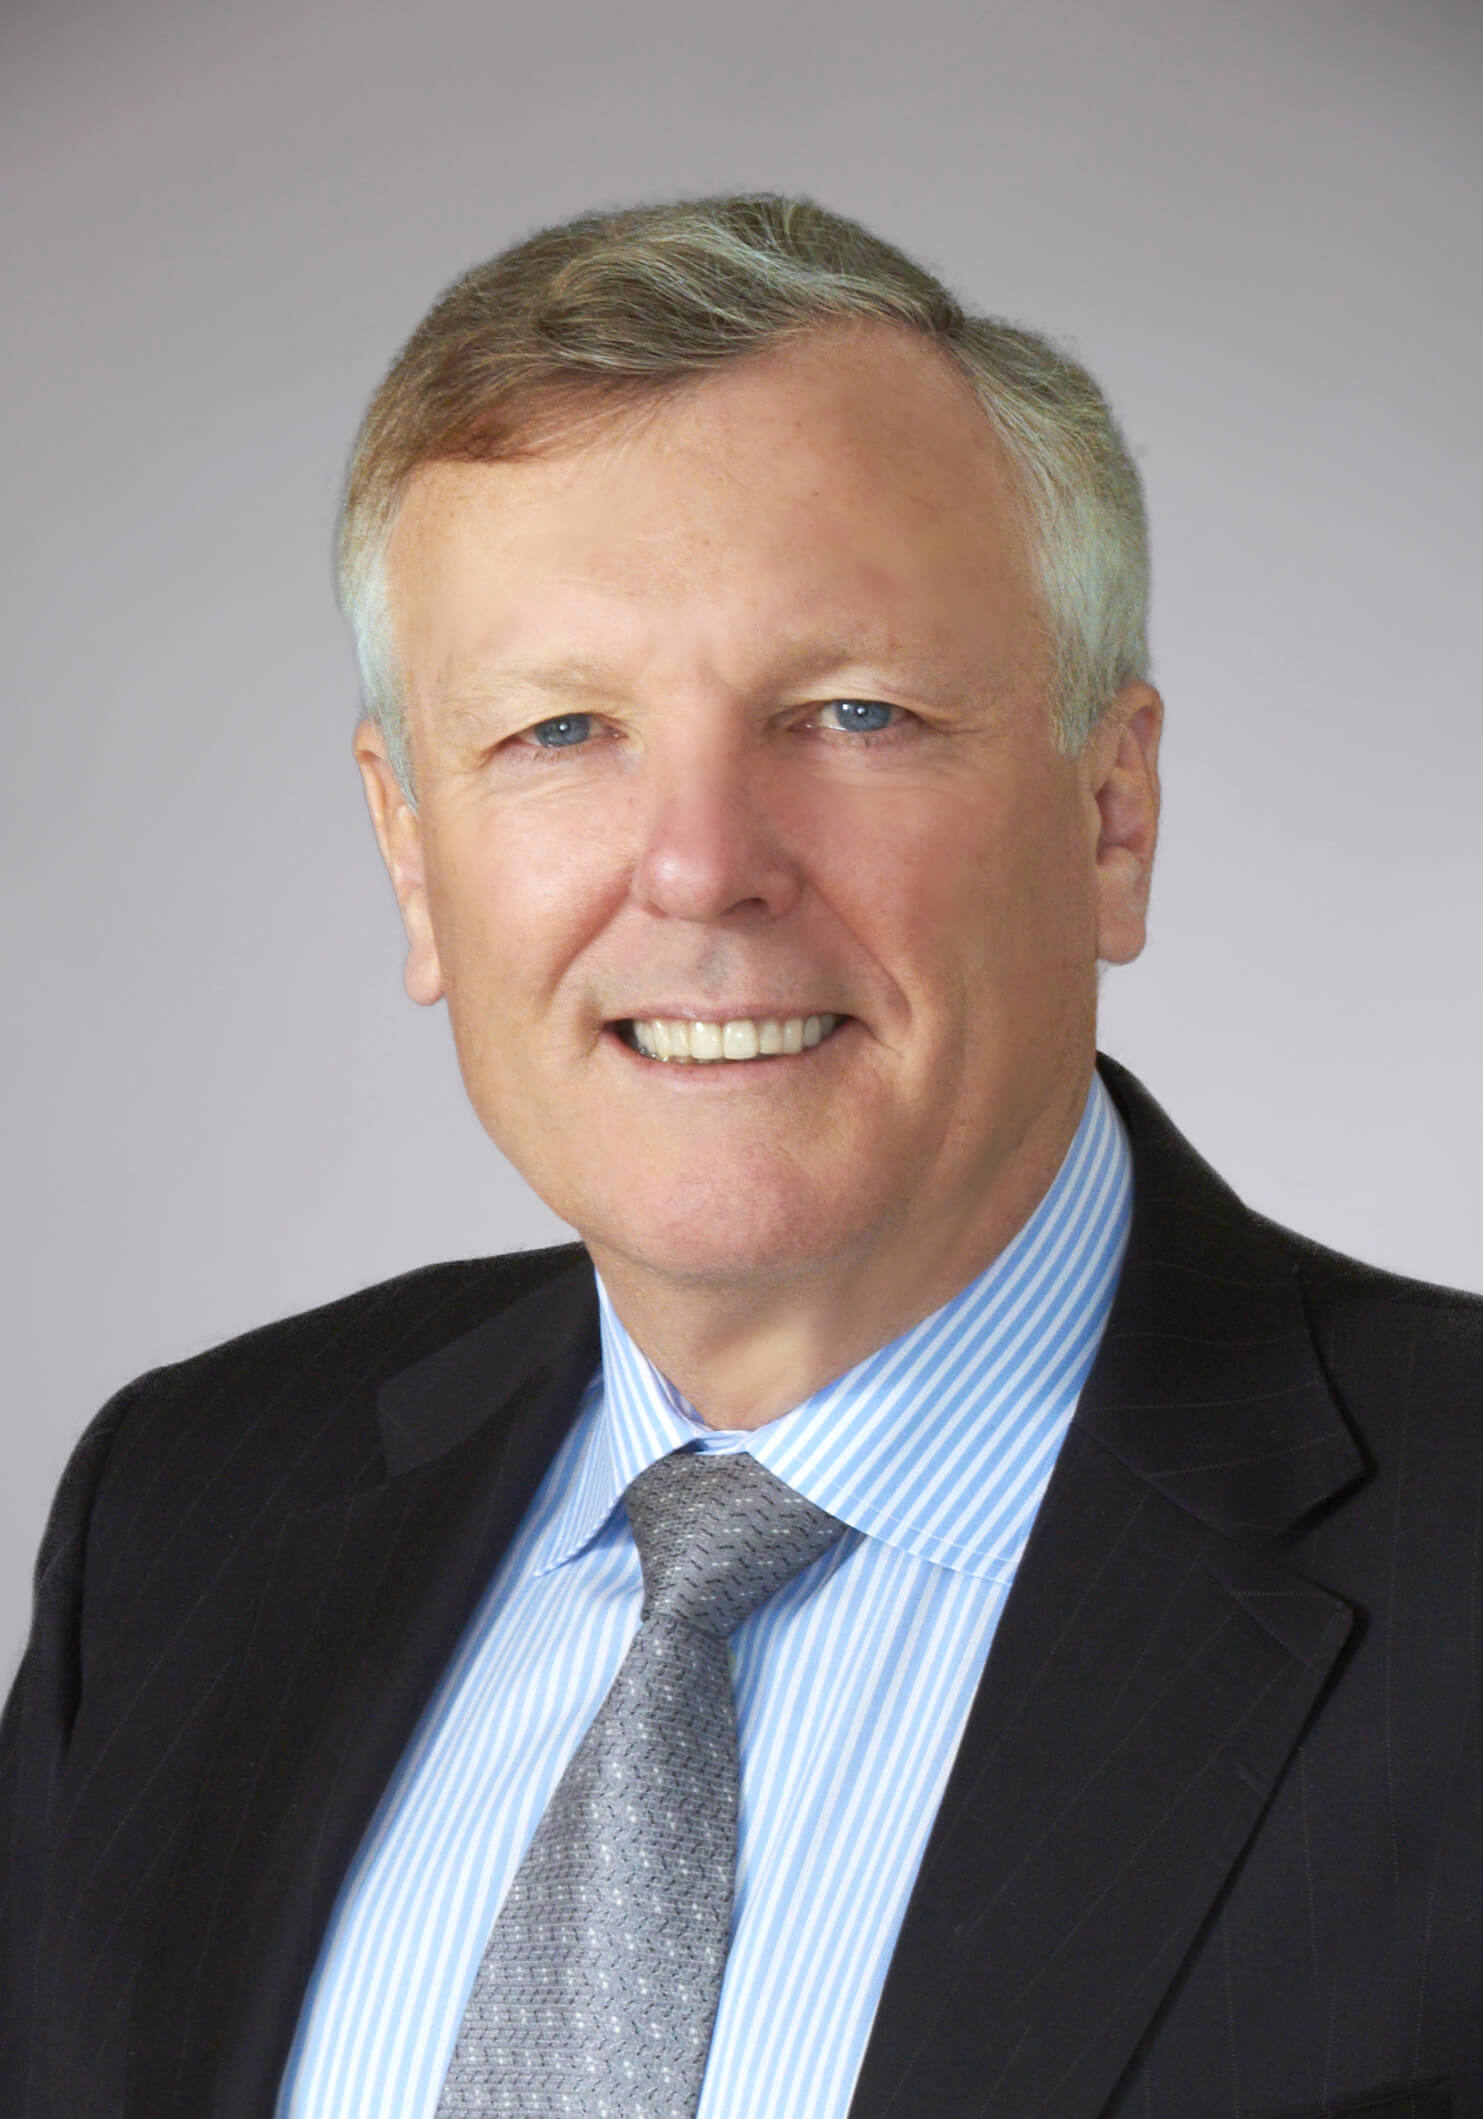 Tom Rutledge, Chairman and Chief Executive Officer